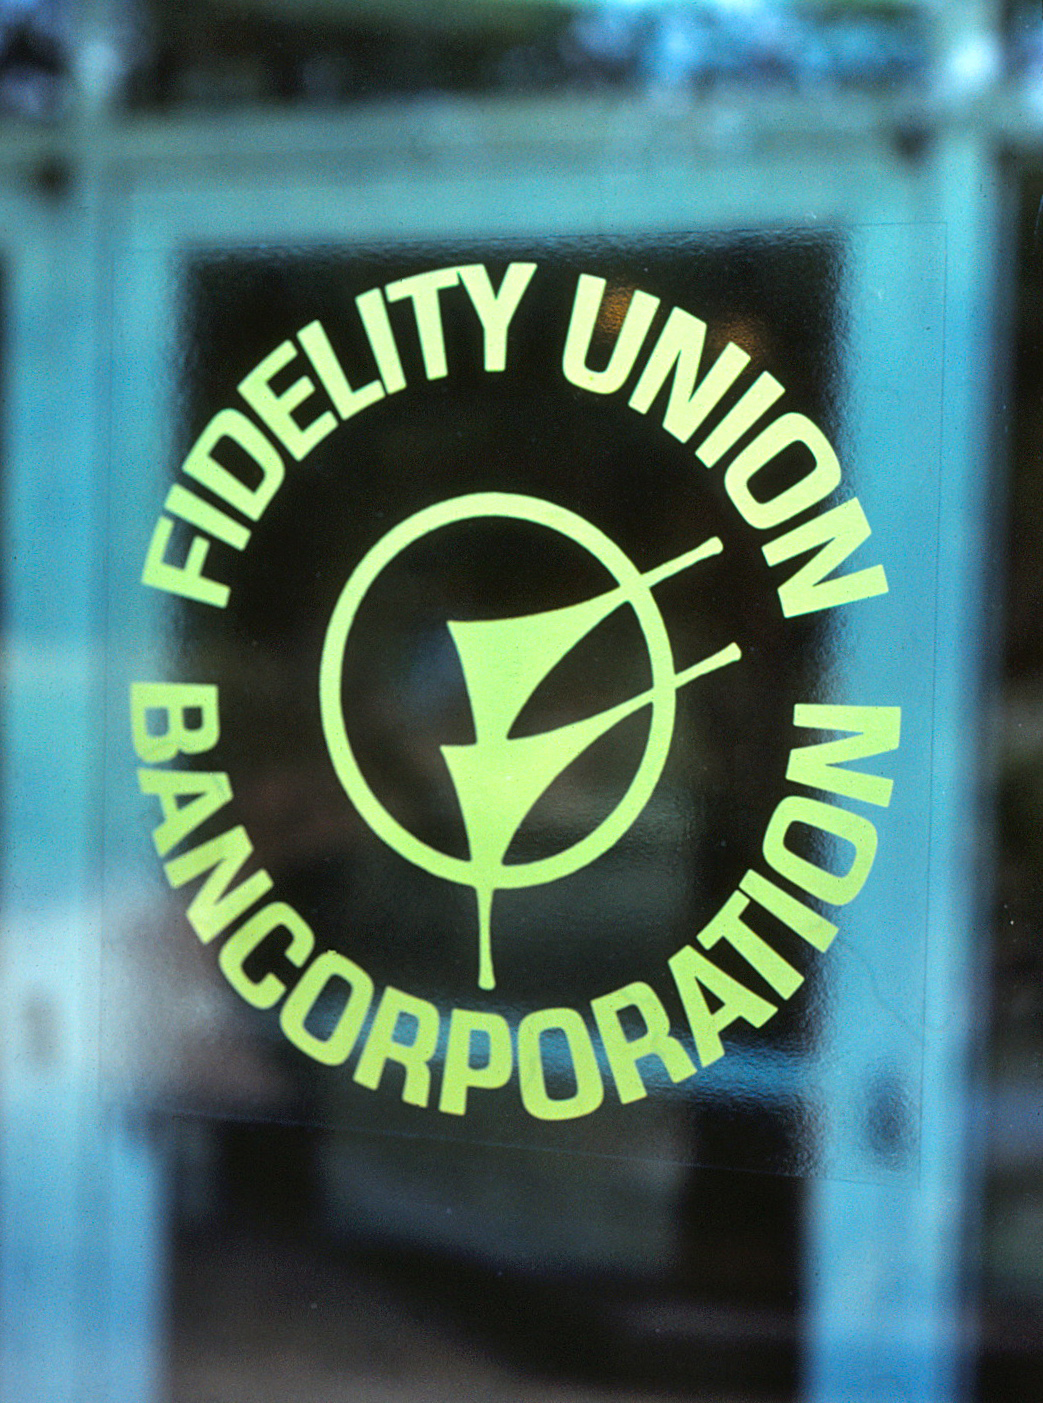 Photo of the old Fidelity Union Bancorporation logo and circular text around it.